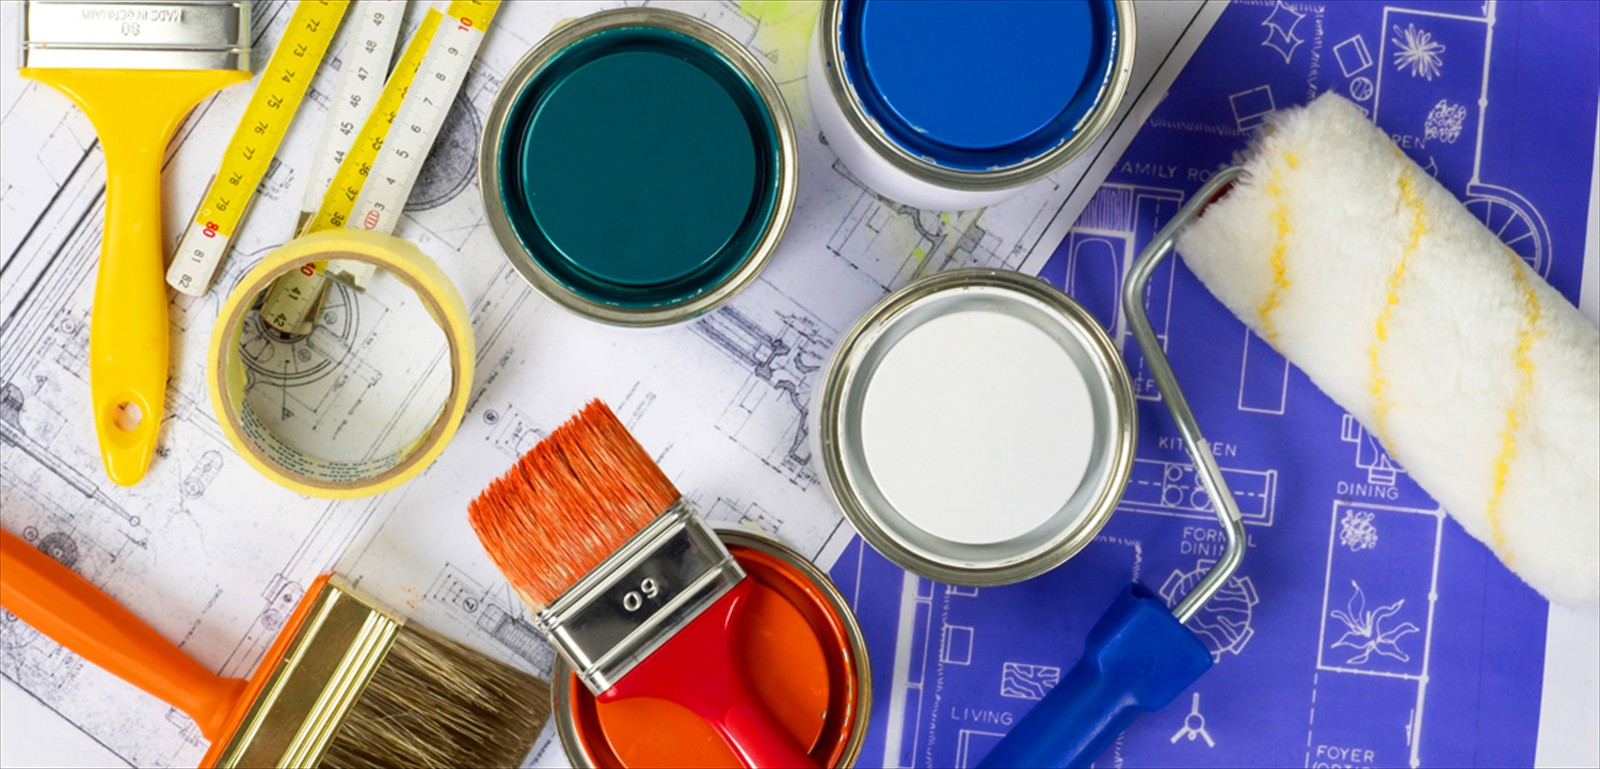 Paramount Painting has Built a Solid and Enviable Reputation by Utilizing only the Highest Quality Paints and Workmanship